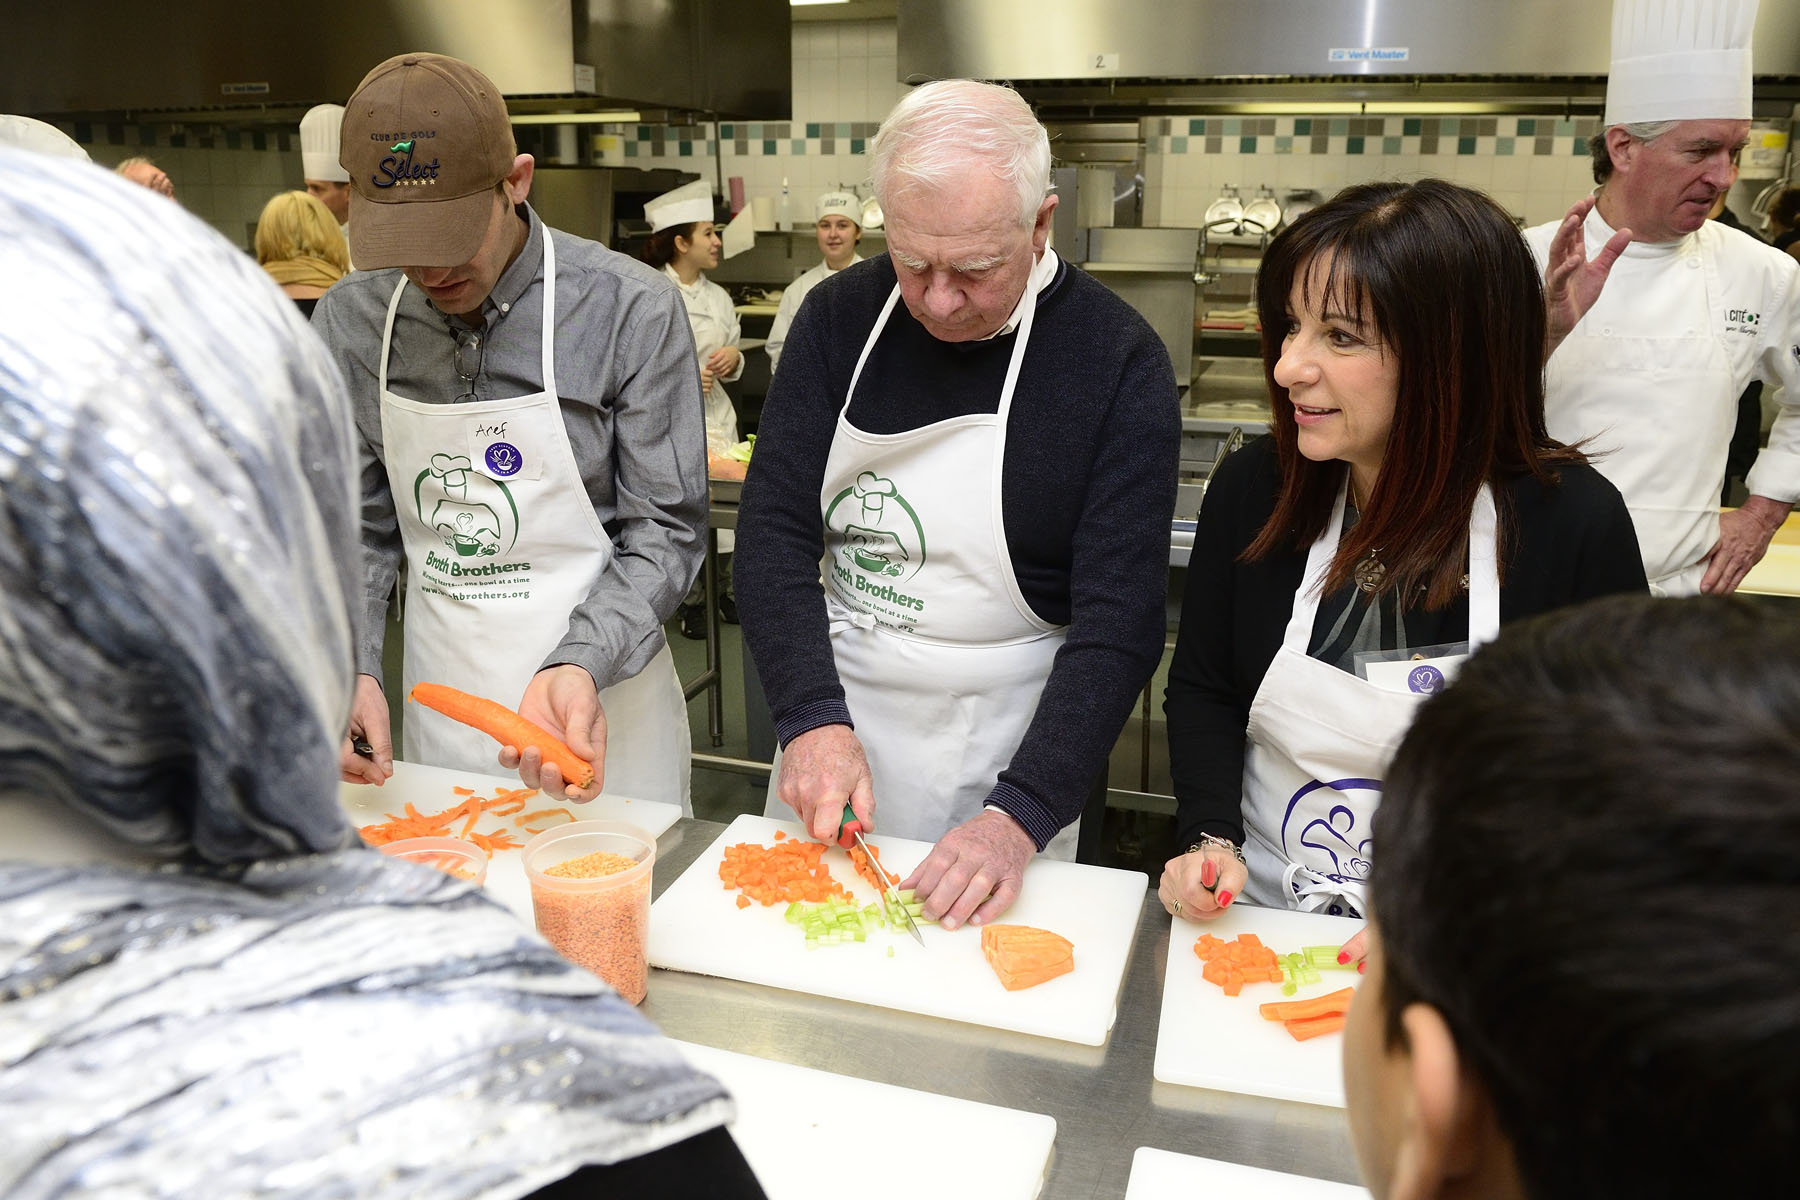 Mrs. Sharon Hapton (right), founder and CEO of Soup Sisters and Broth Brothers and recent recipient of the Meritorious Service Medal, was on hand to help prepare the vegetables for the soup.